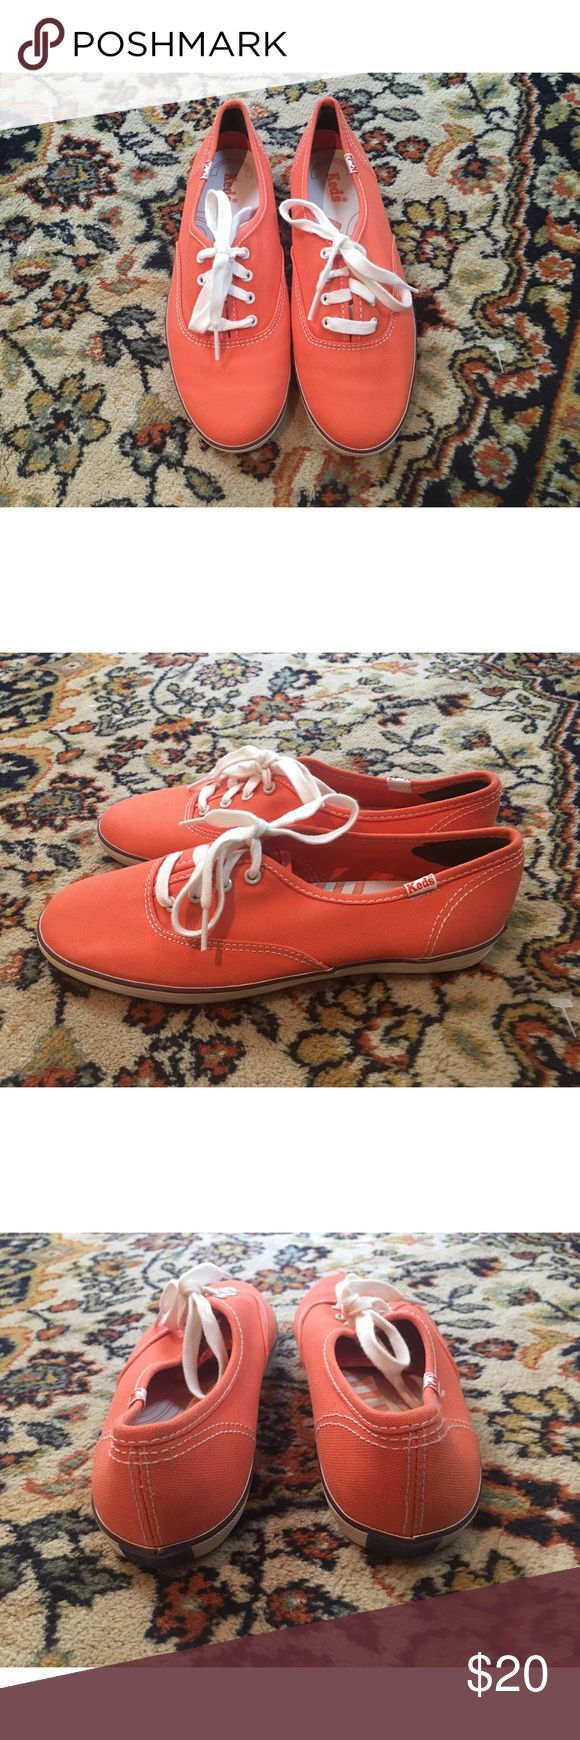 NEW Keds Tennis Shoes Orange Women's Size 6.5 🔥 SALE!! Lowest!!! New Without Box! Size 6.5 Classic Keds Tennis Shoes in Orange 🌿🌸 Keds Shoes